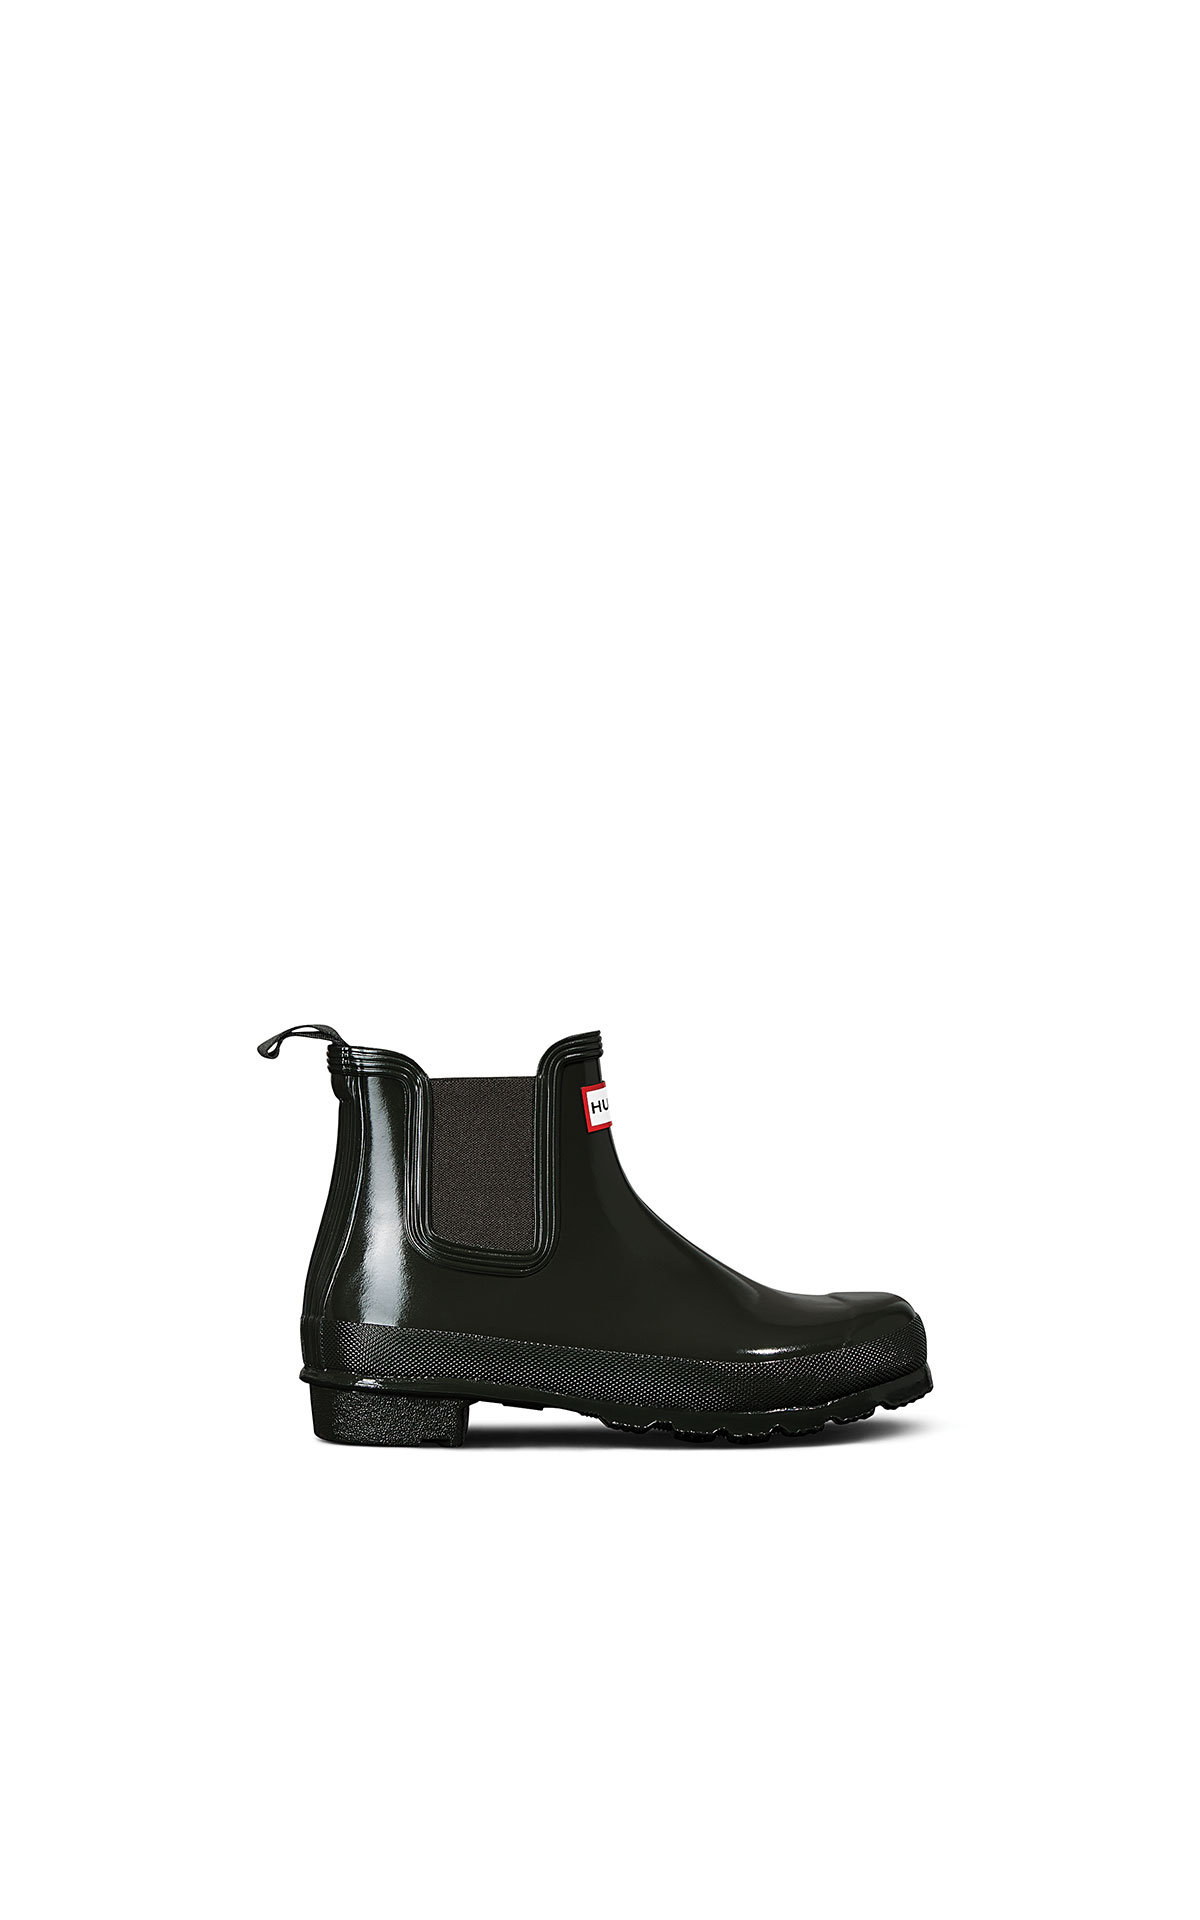 Hunter Women's original Chelsea gloss boot from Bicester Village